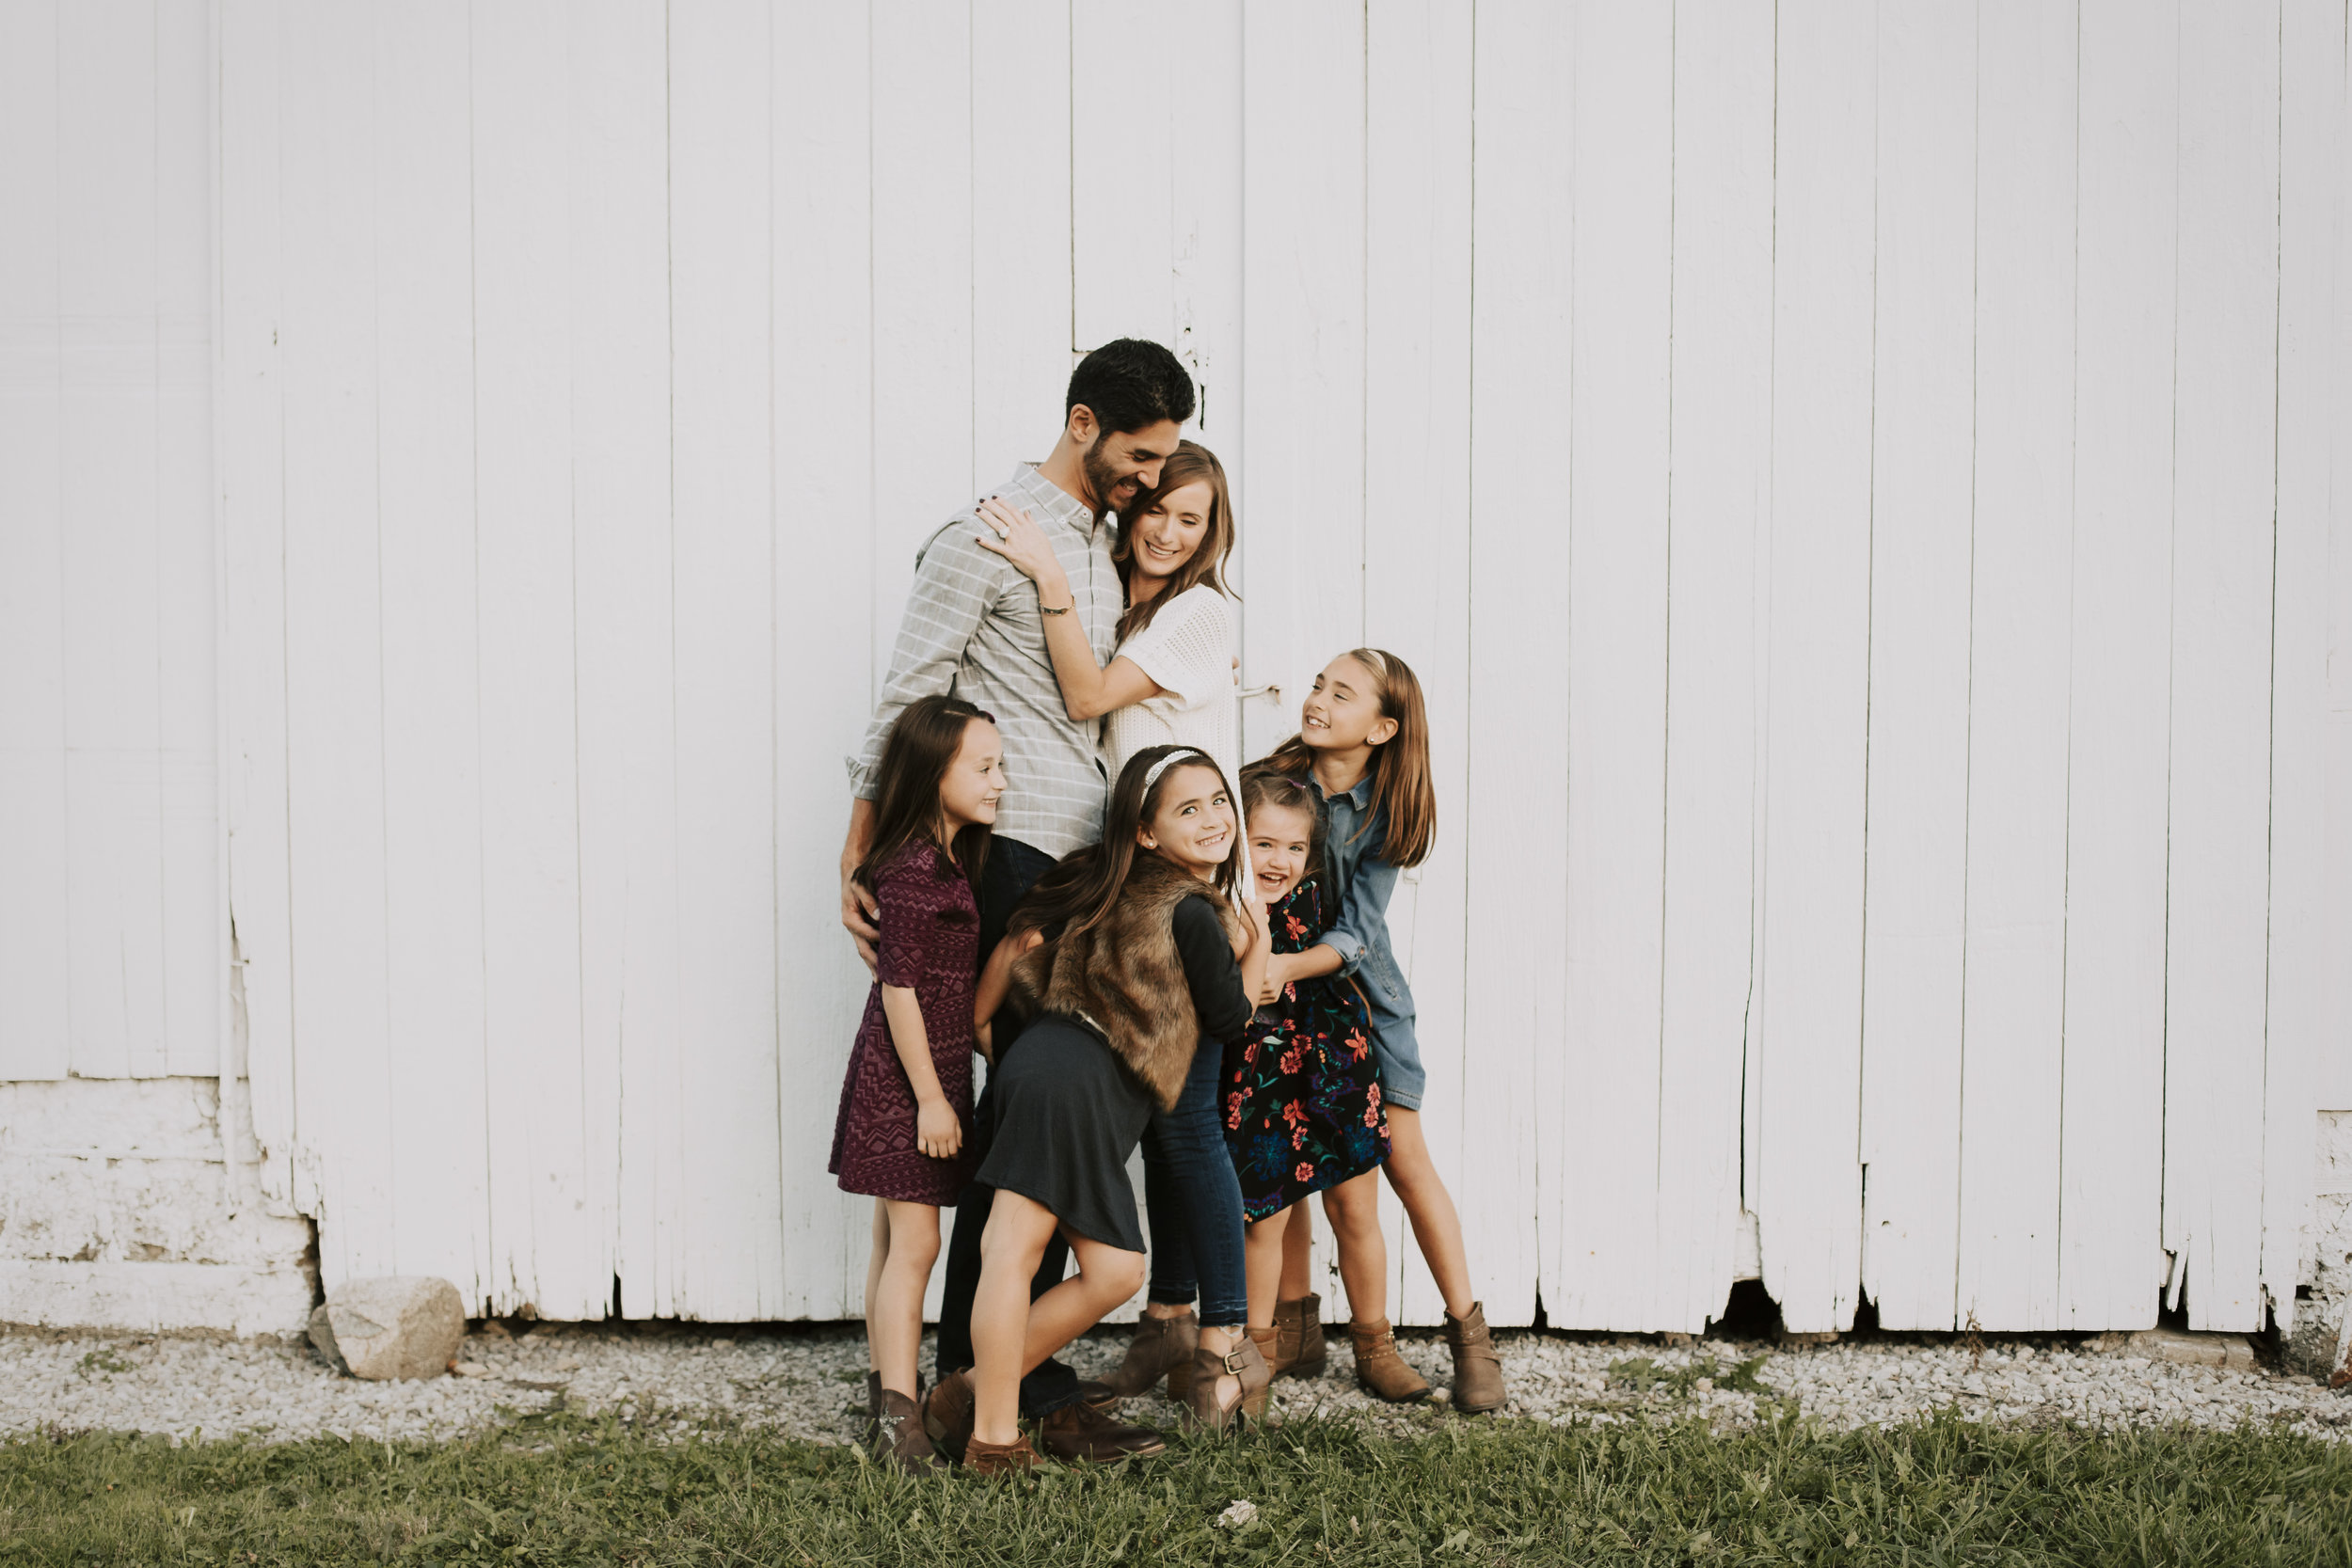 FAMILY - • $400• 1-1.5 hour session (in-home or outdoor)• 65 edited digital files sent through an online gallery• Personal printing rights